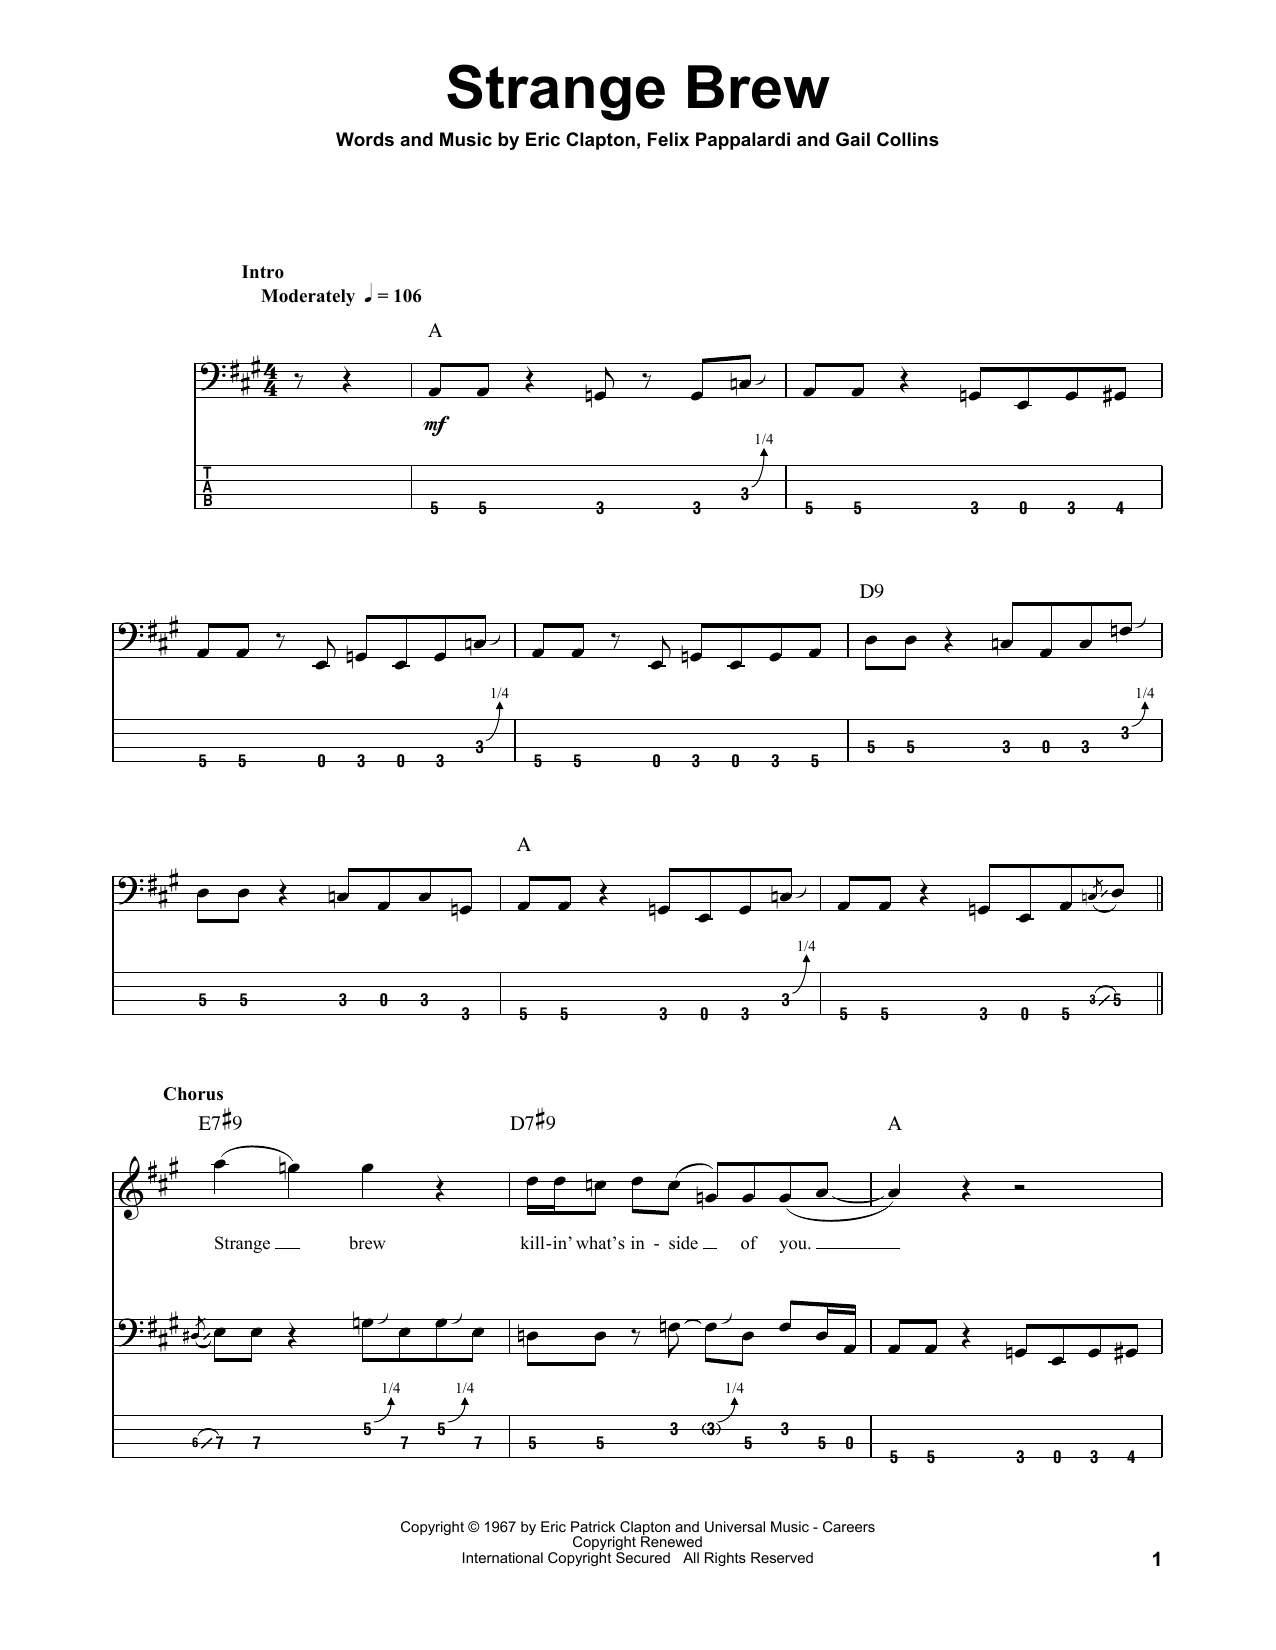 Strange Brew Sheet Music